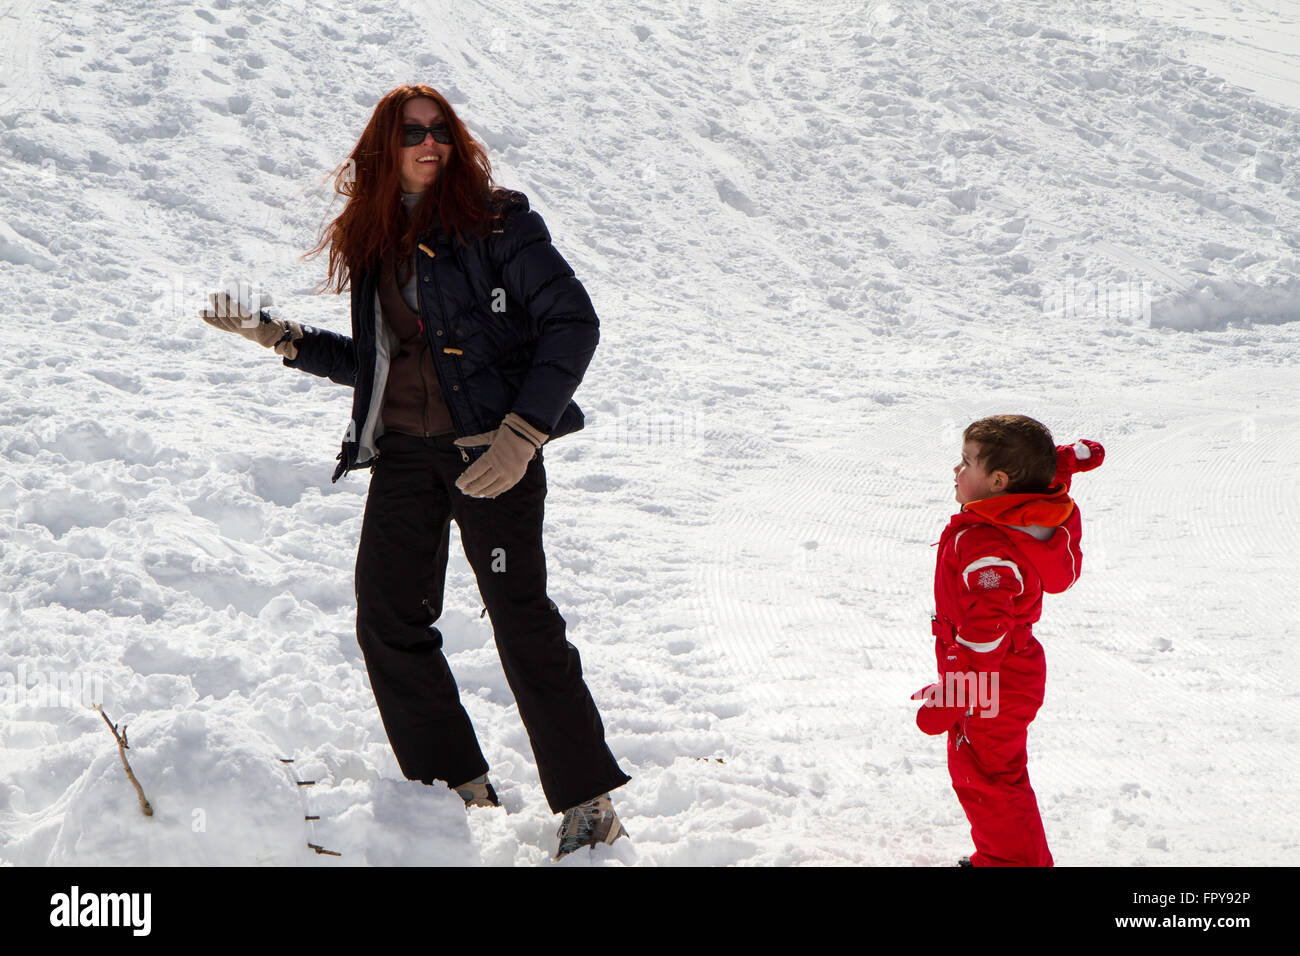 Mom and baby with red ski suit playing snowballs - Stock Image